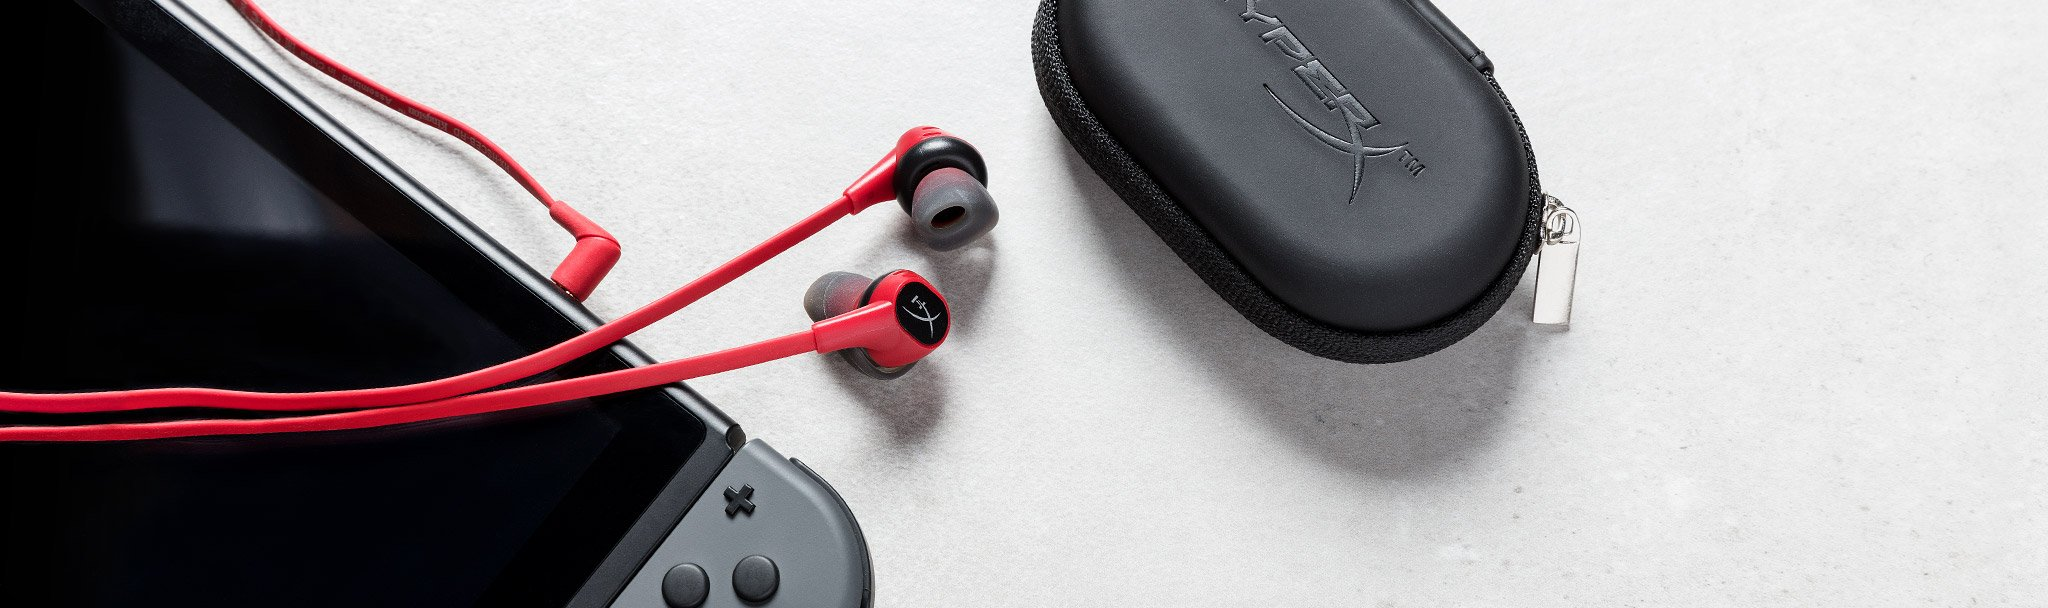 Why you shouldn't use phone earbuds hyperx cloud earbuds